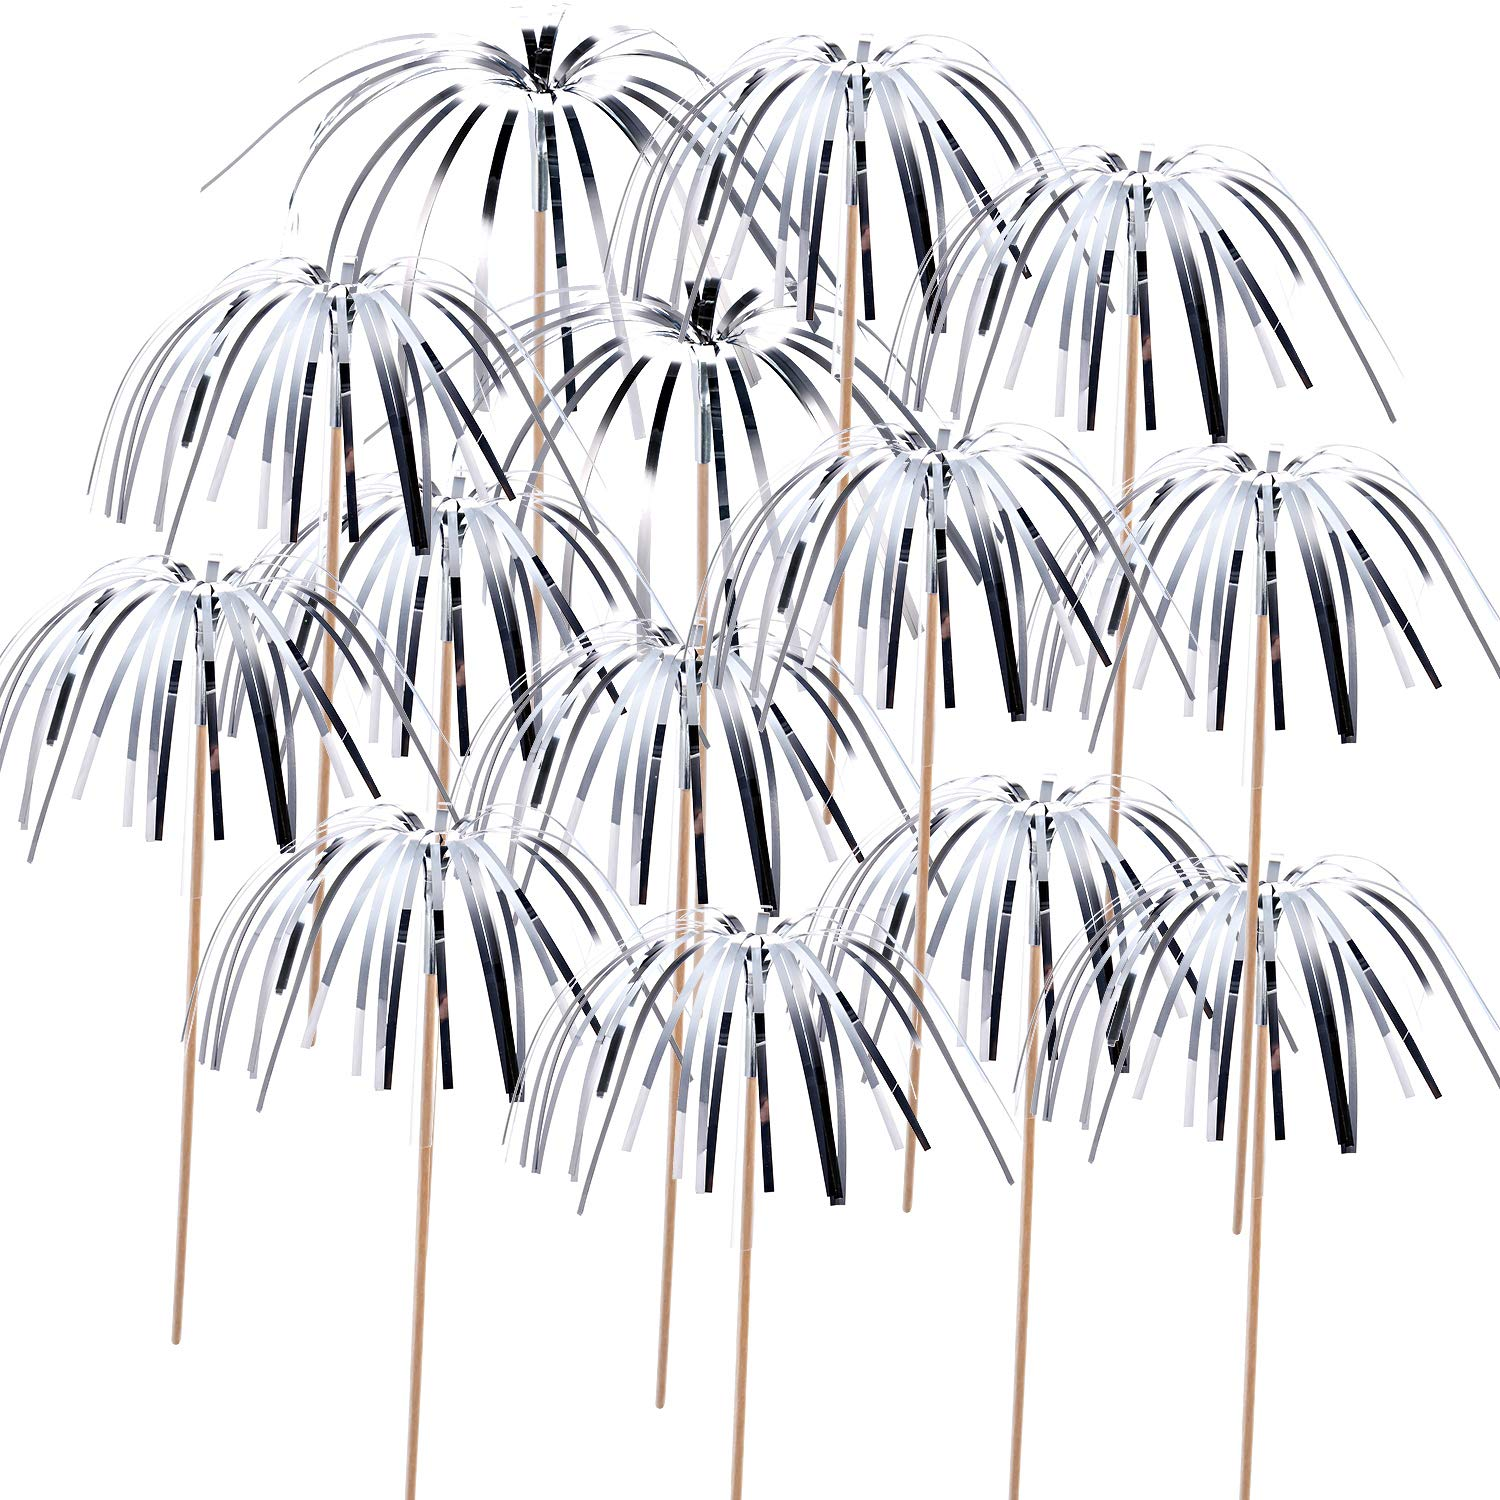 TecUnite 100 Pieces Foil Frill Firework Cupcake Picks Christmas Cupcake Topper 9 Inch Coconut Tree Shape, Food Picks Supplies Party Decoration (Silver)